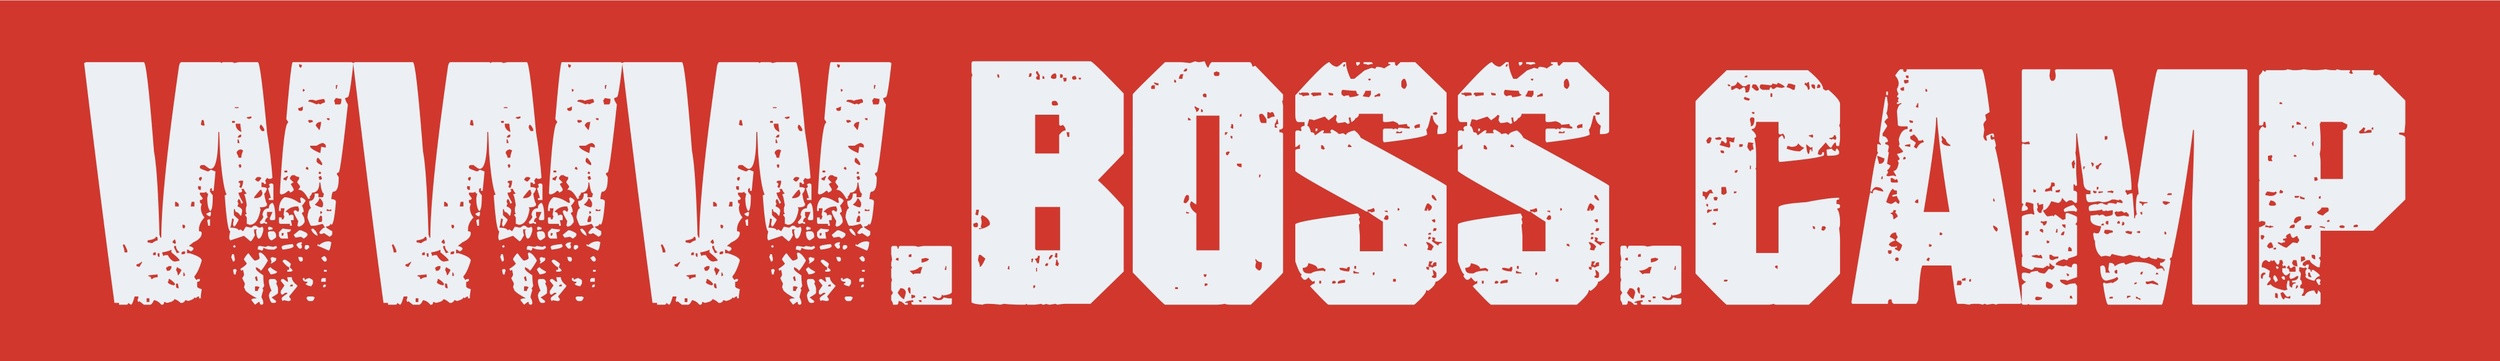 Applying for a job in management? Find out how to make managing easy at www.boss.camp Jpeg